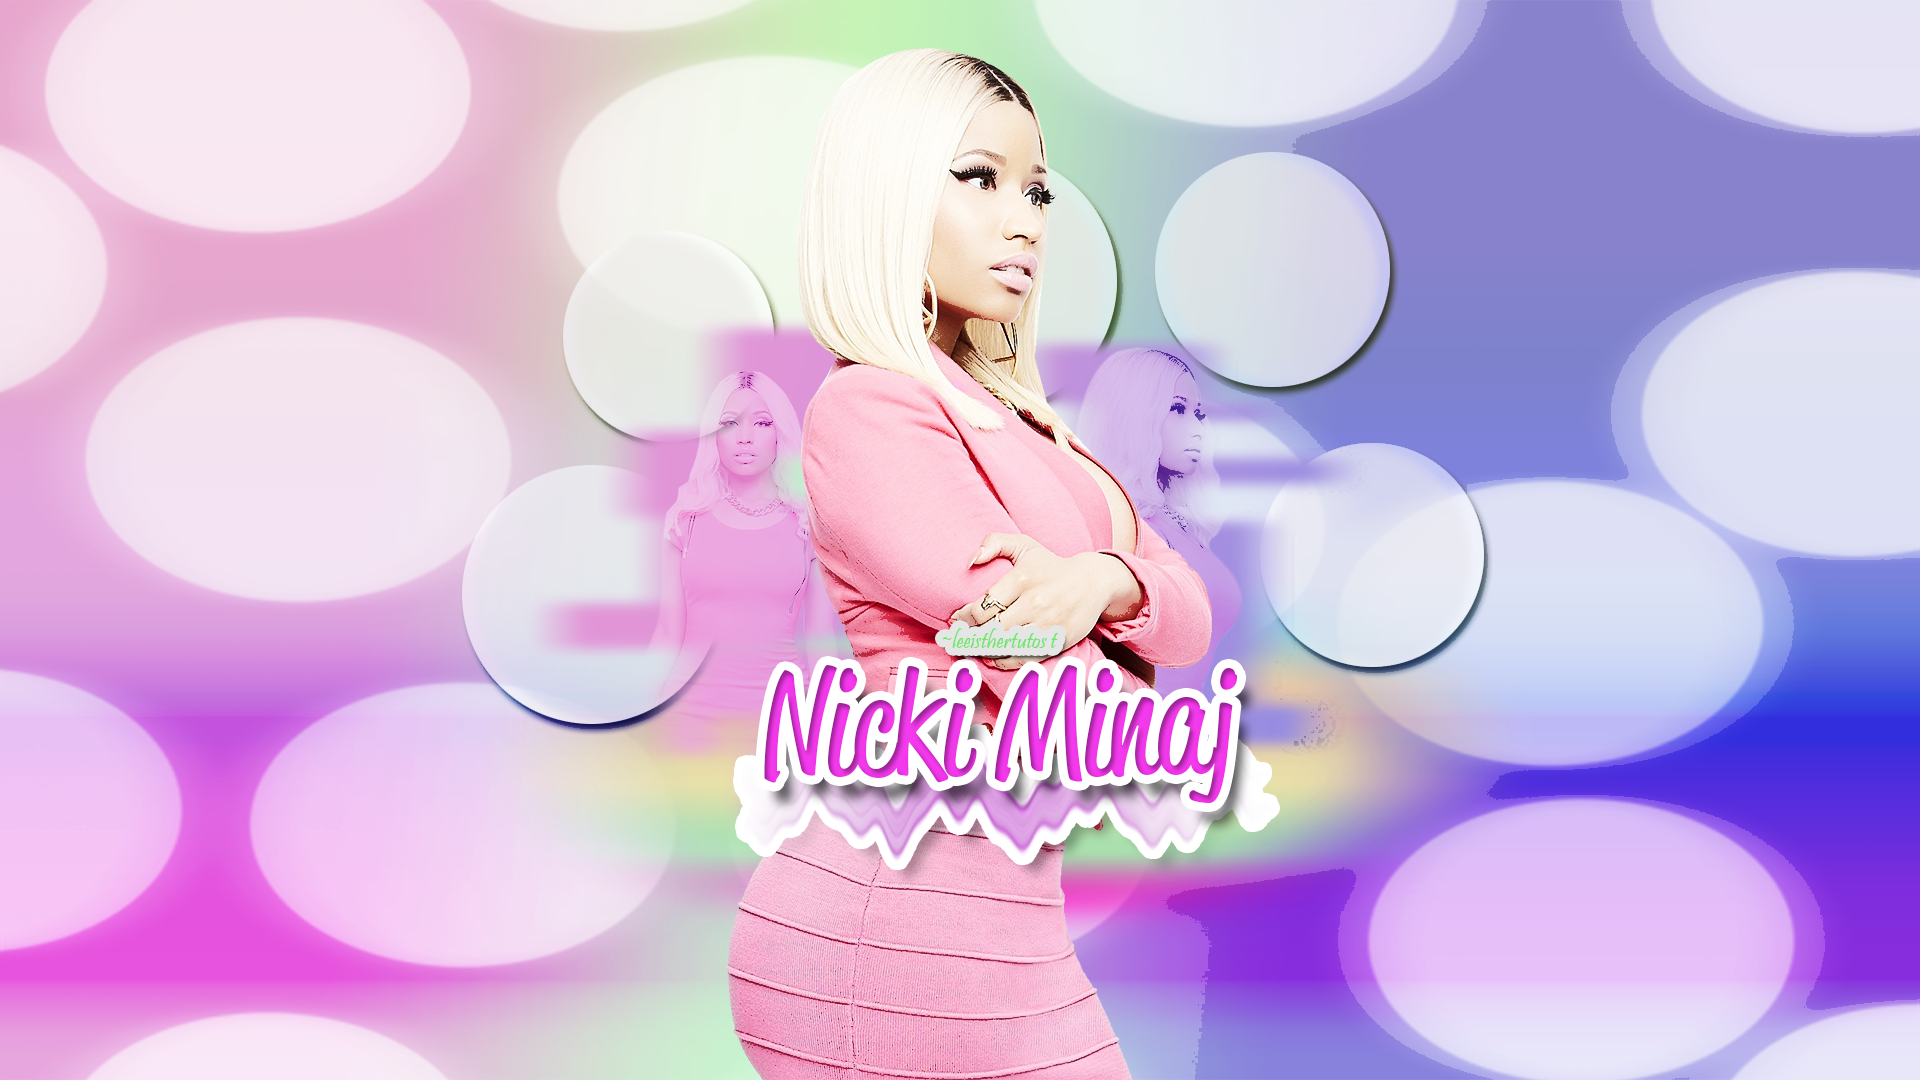 nicki minaj wallpaper hq by leeisther customization wallpaper fantasy 1920x1080